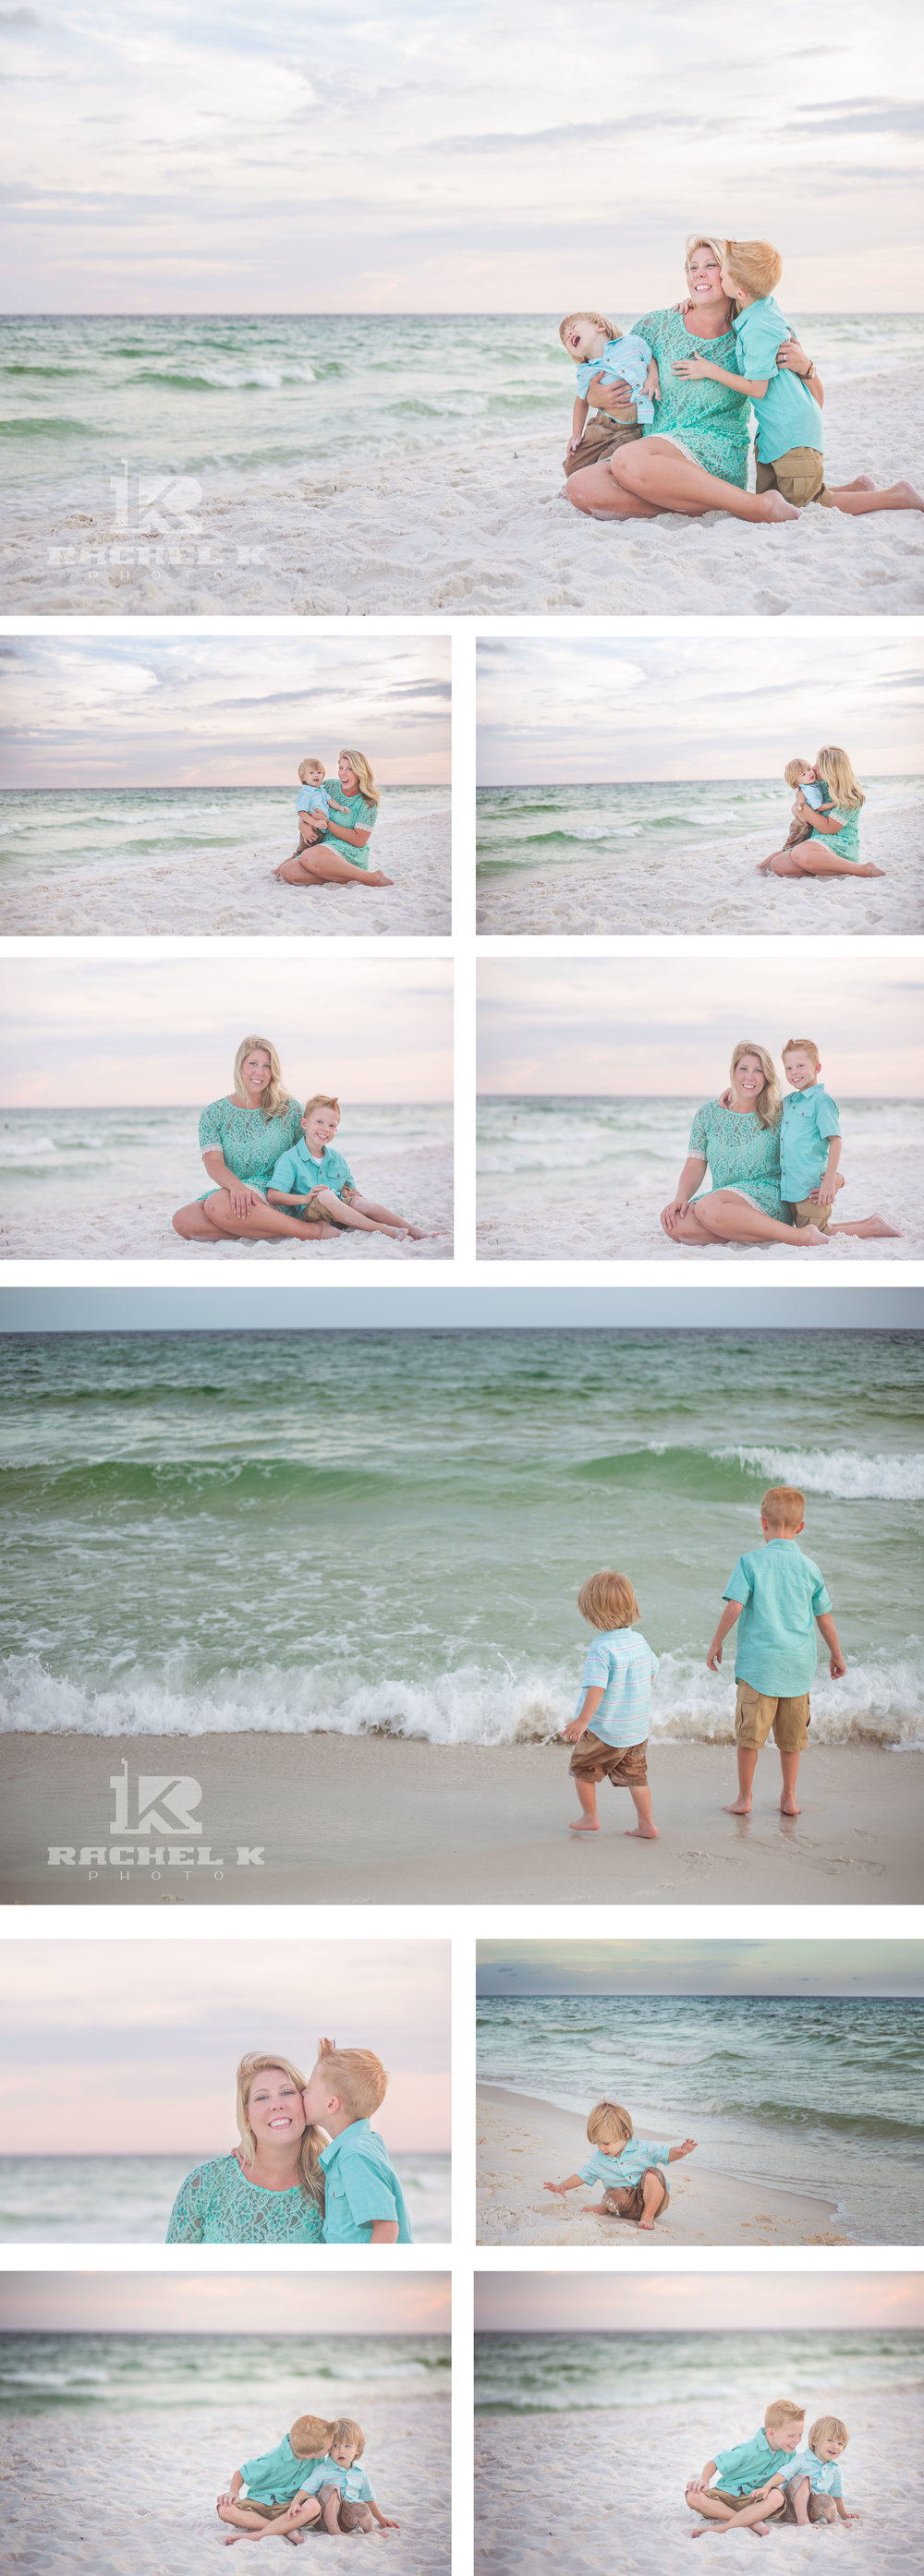 Family photos on the beach with Knoxville TN photographer Rachel K Photo